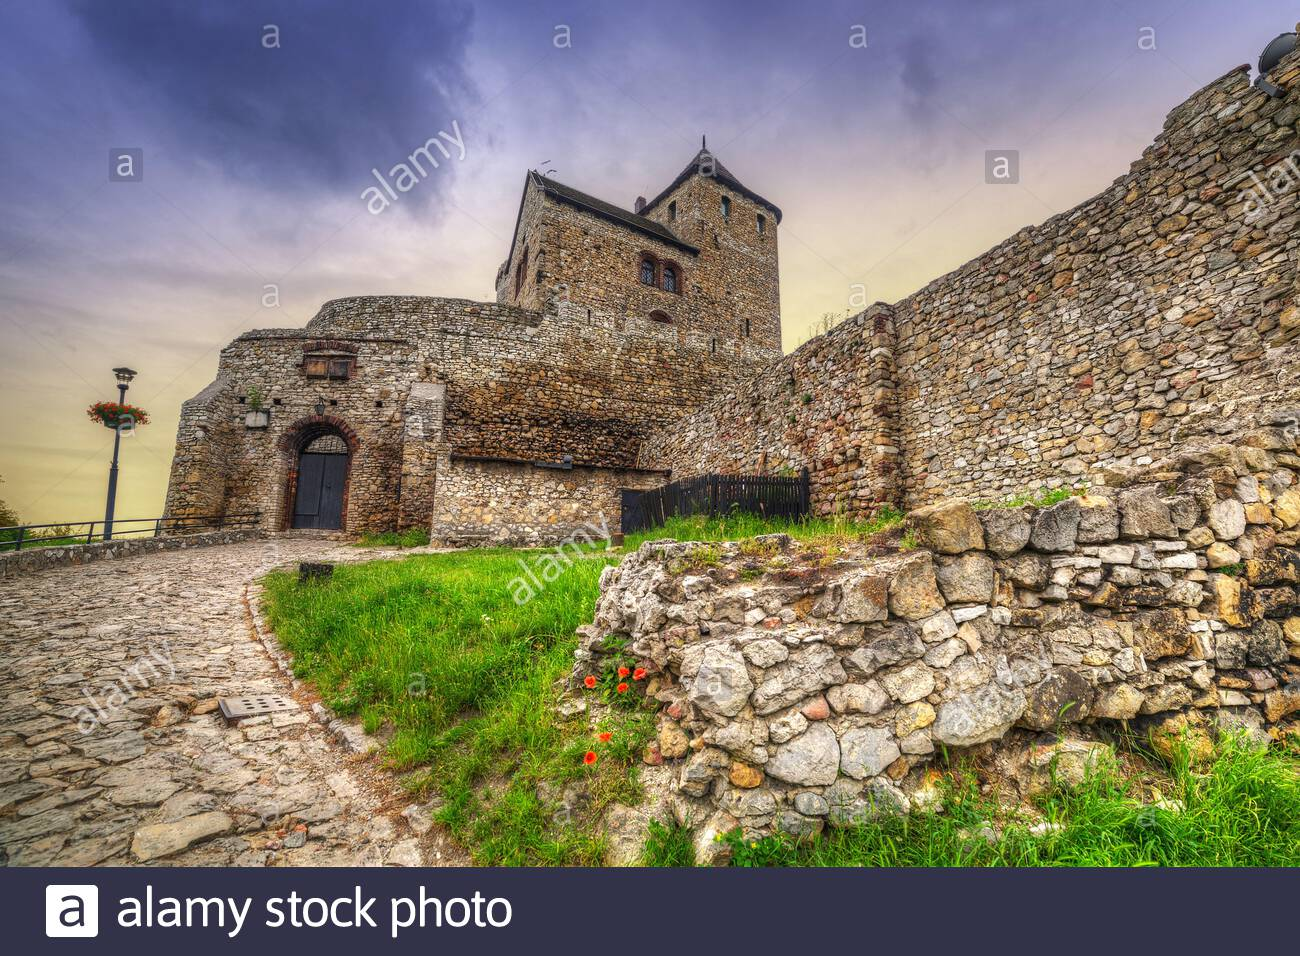 Medieval castle in Bedzin at sunset, Poland Stock Photo